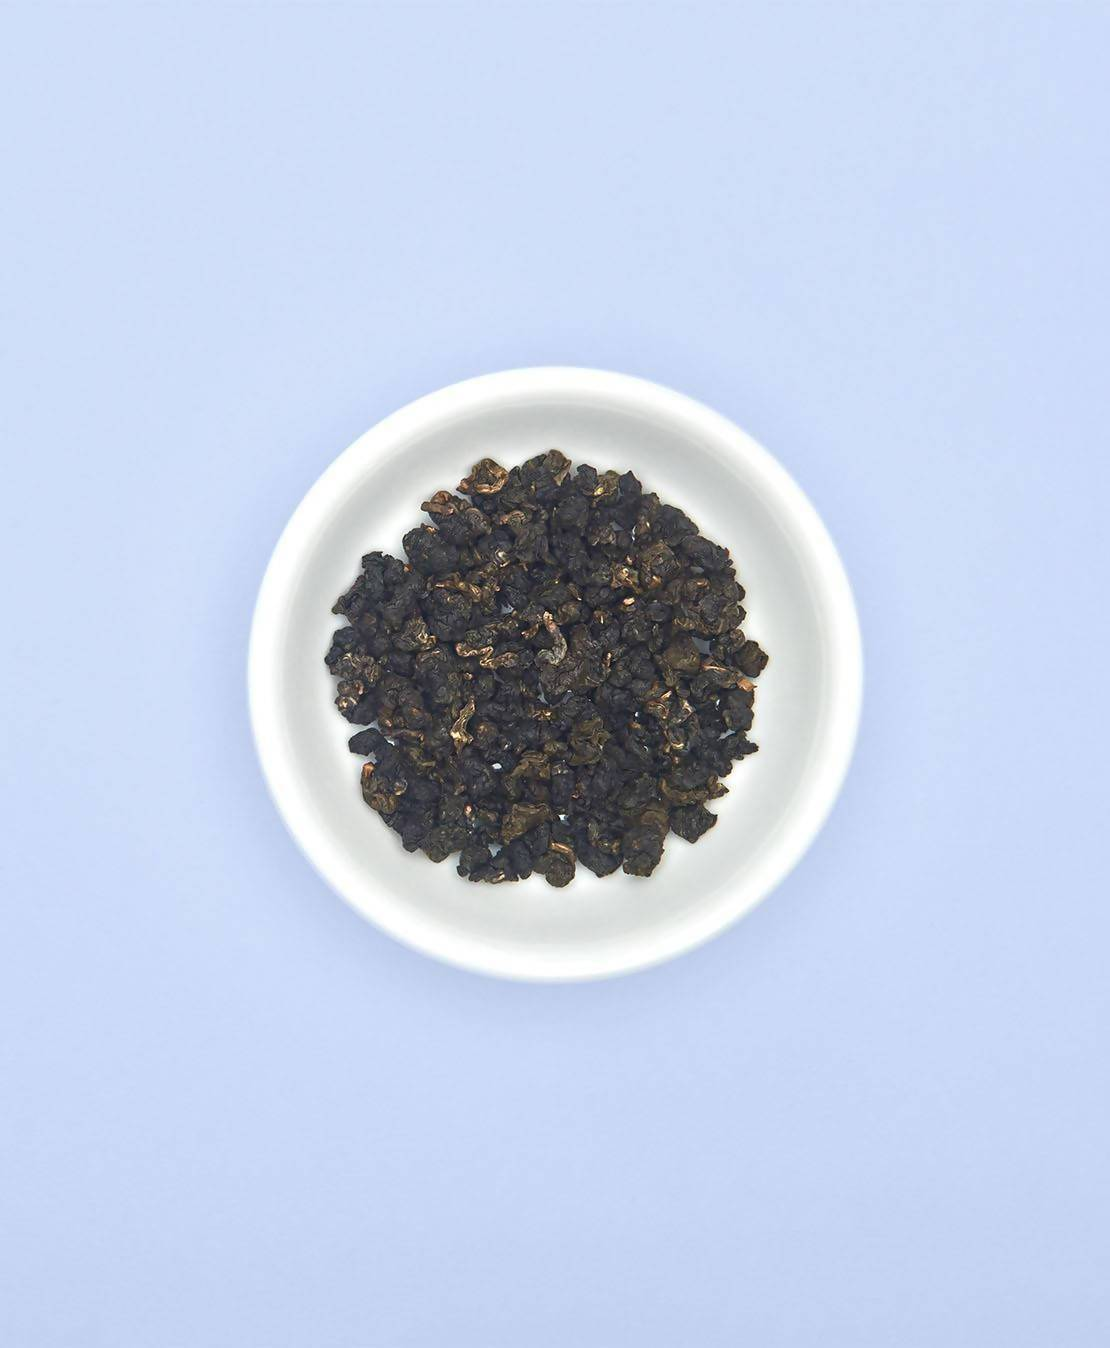 Dong Ding Oolong - Teas - Kindred Teas - Naiise